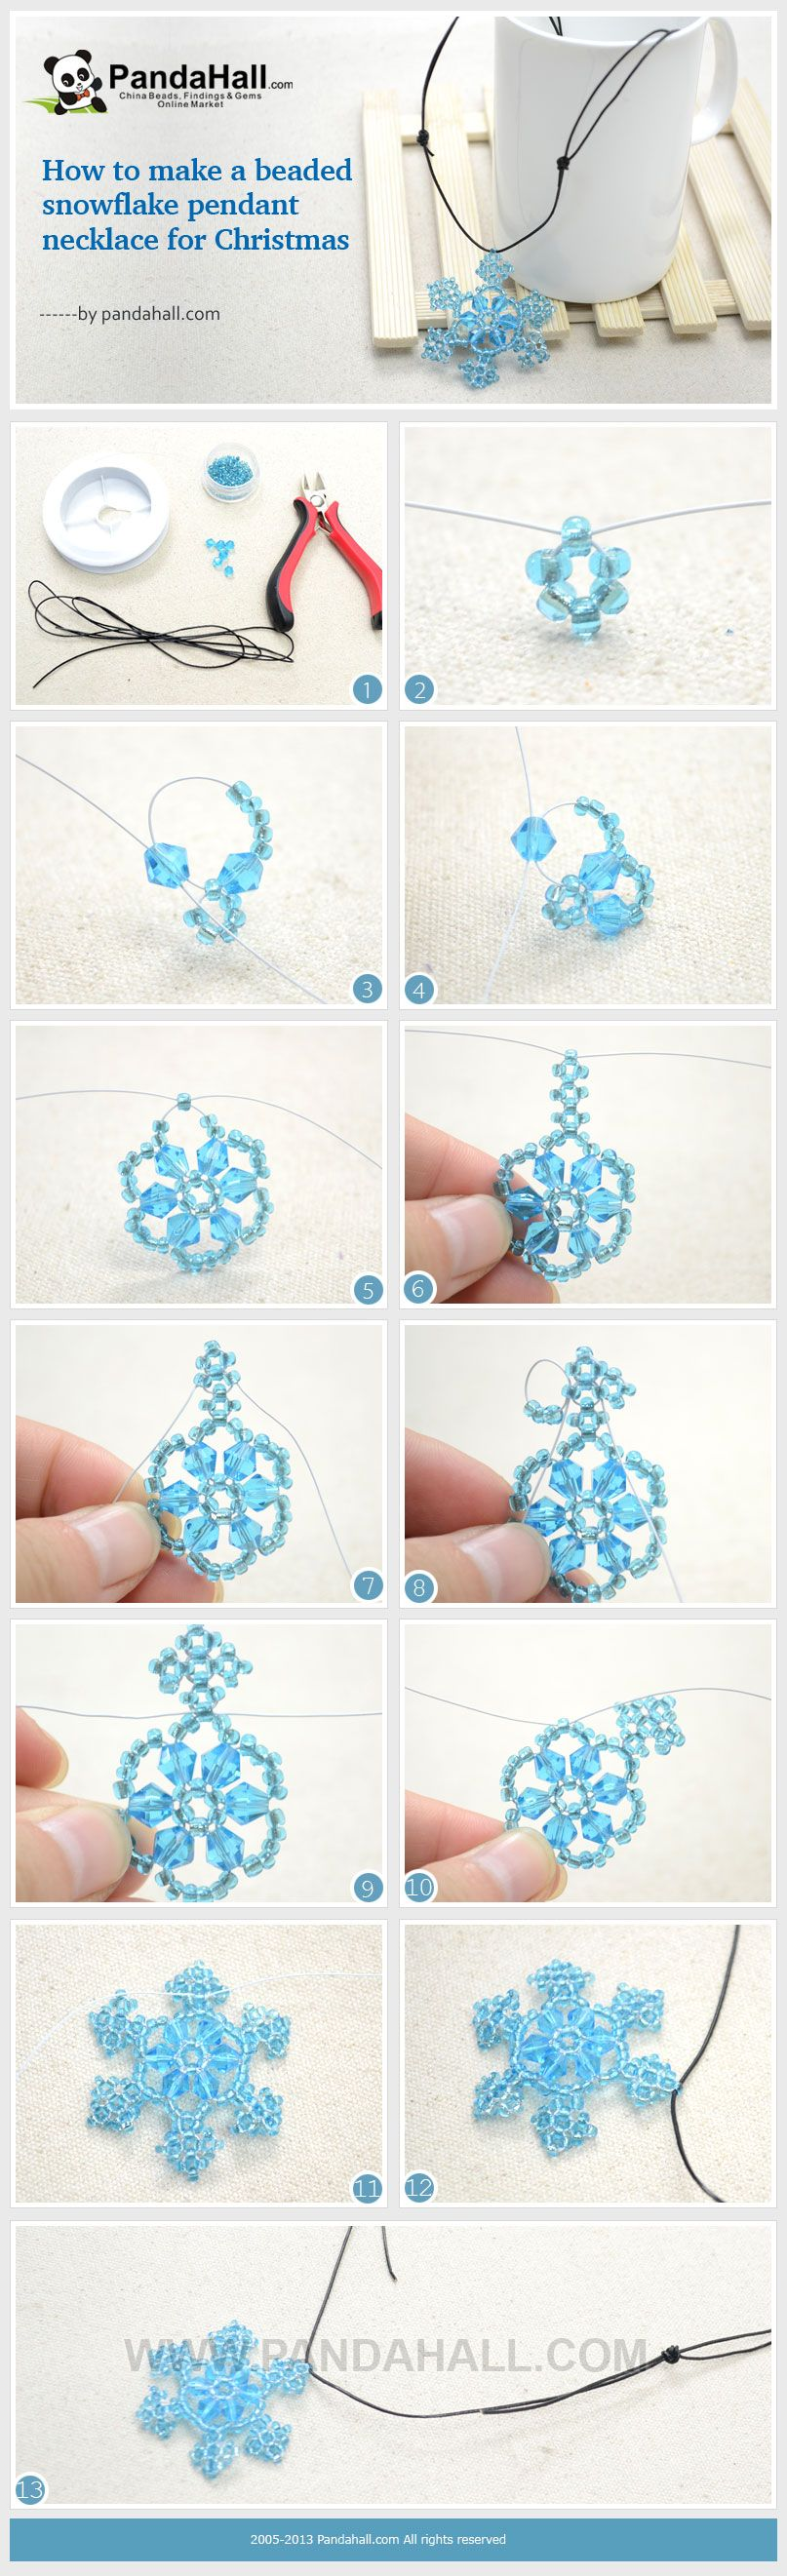 how to make snowflake ornaments